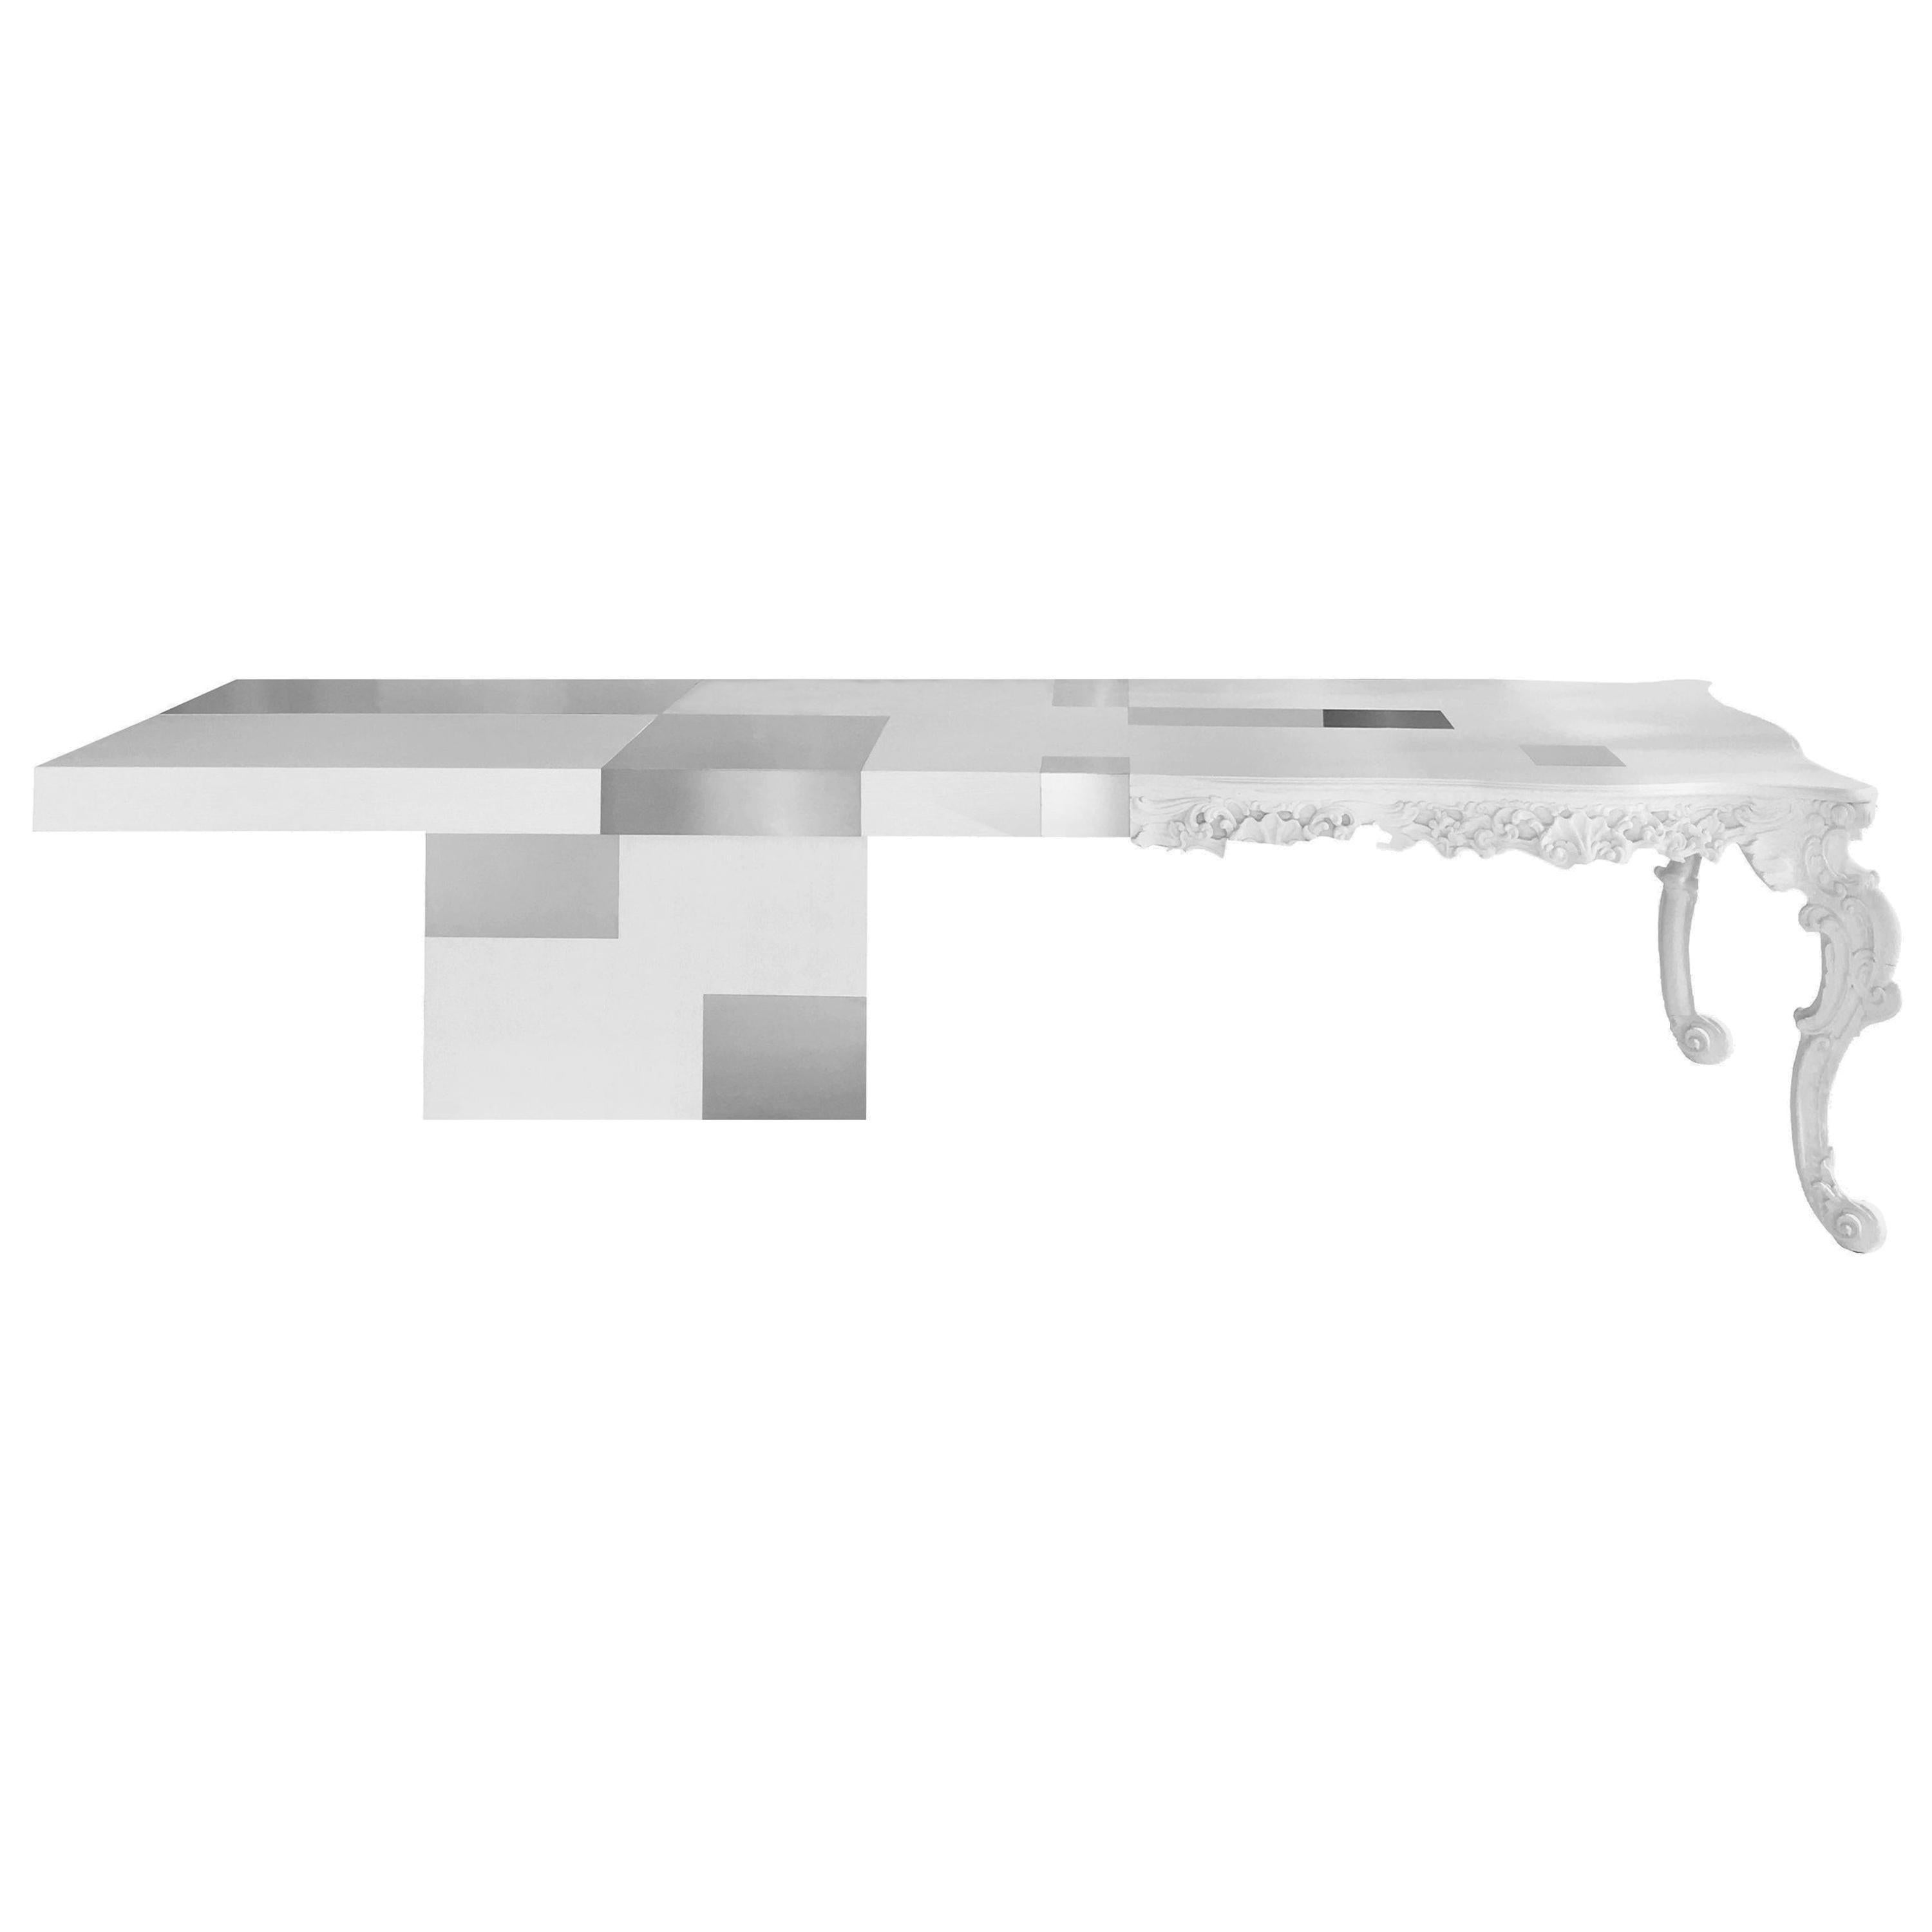 In Stock in Los Angeles, Evo White Dining Table, Feruccio Laviani, Made in Italy